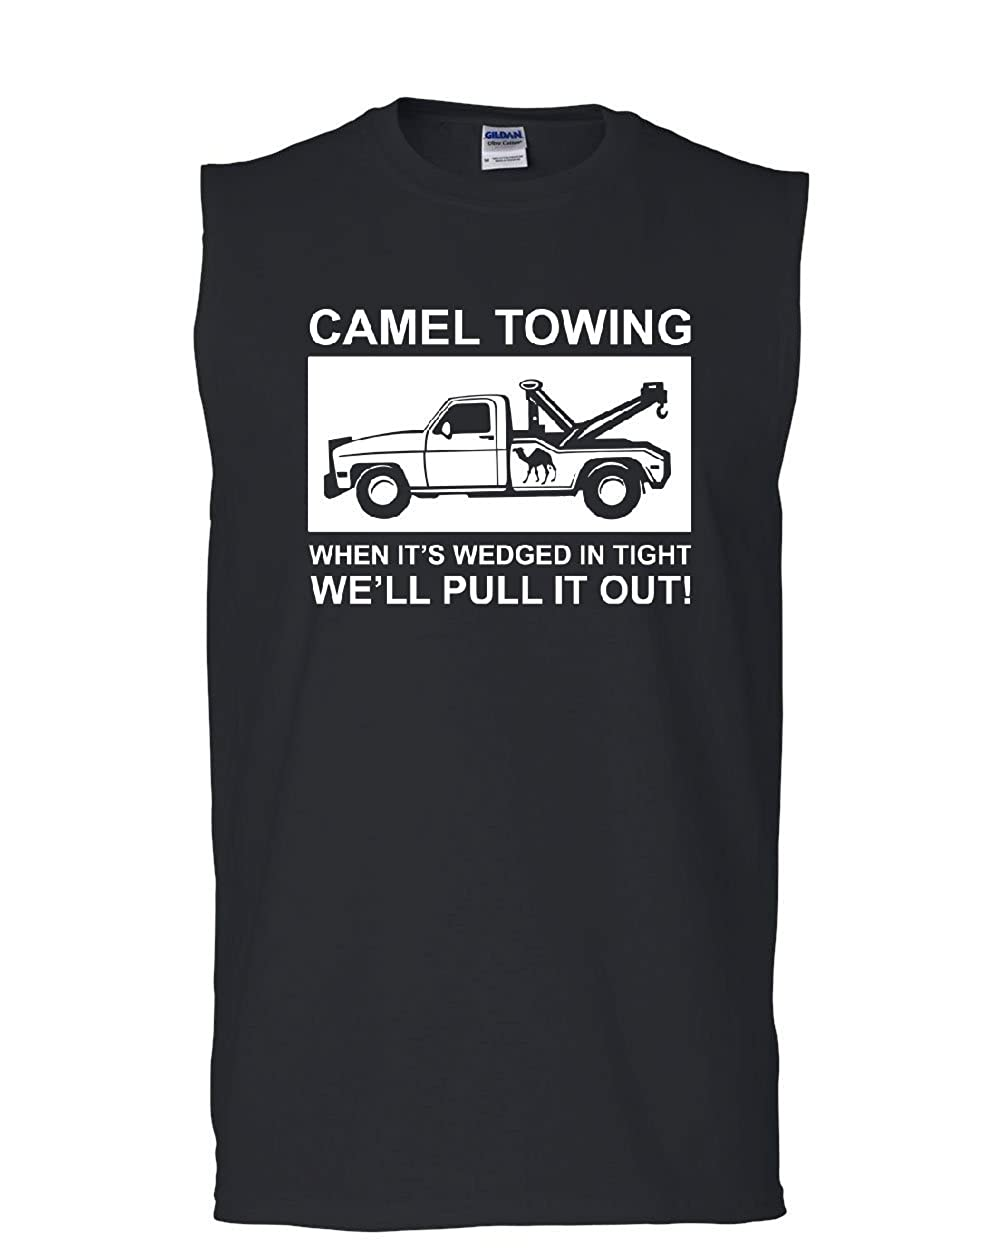 Tee Hunt Camel Towing Pull it Out Muscle Shirt Funny Naughty Adult Camel Toe Sleeveless